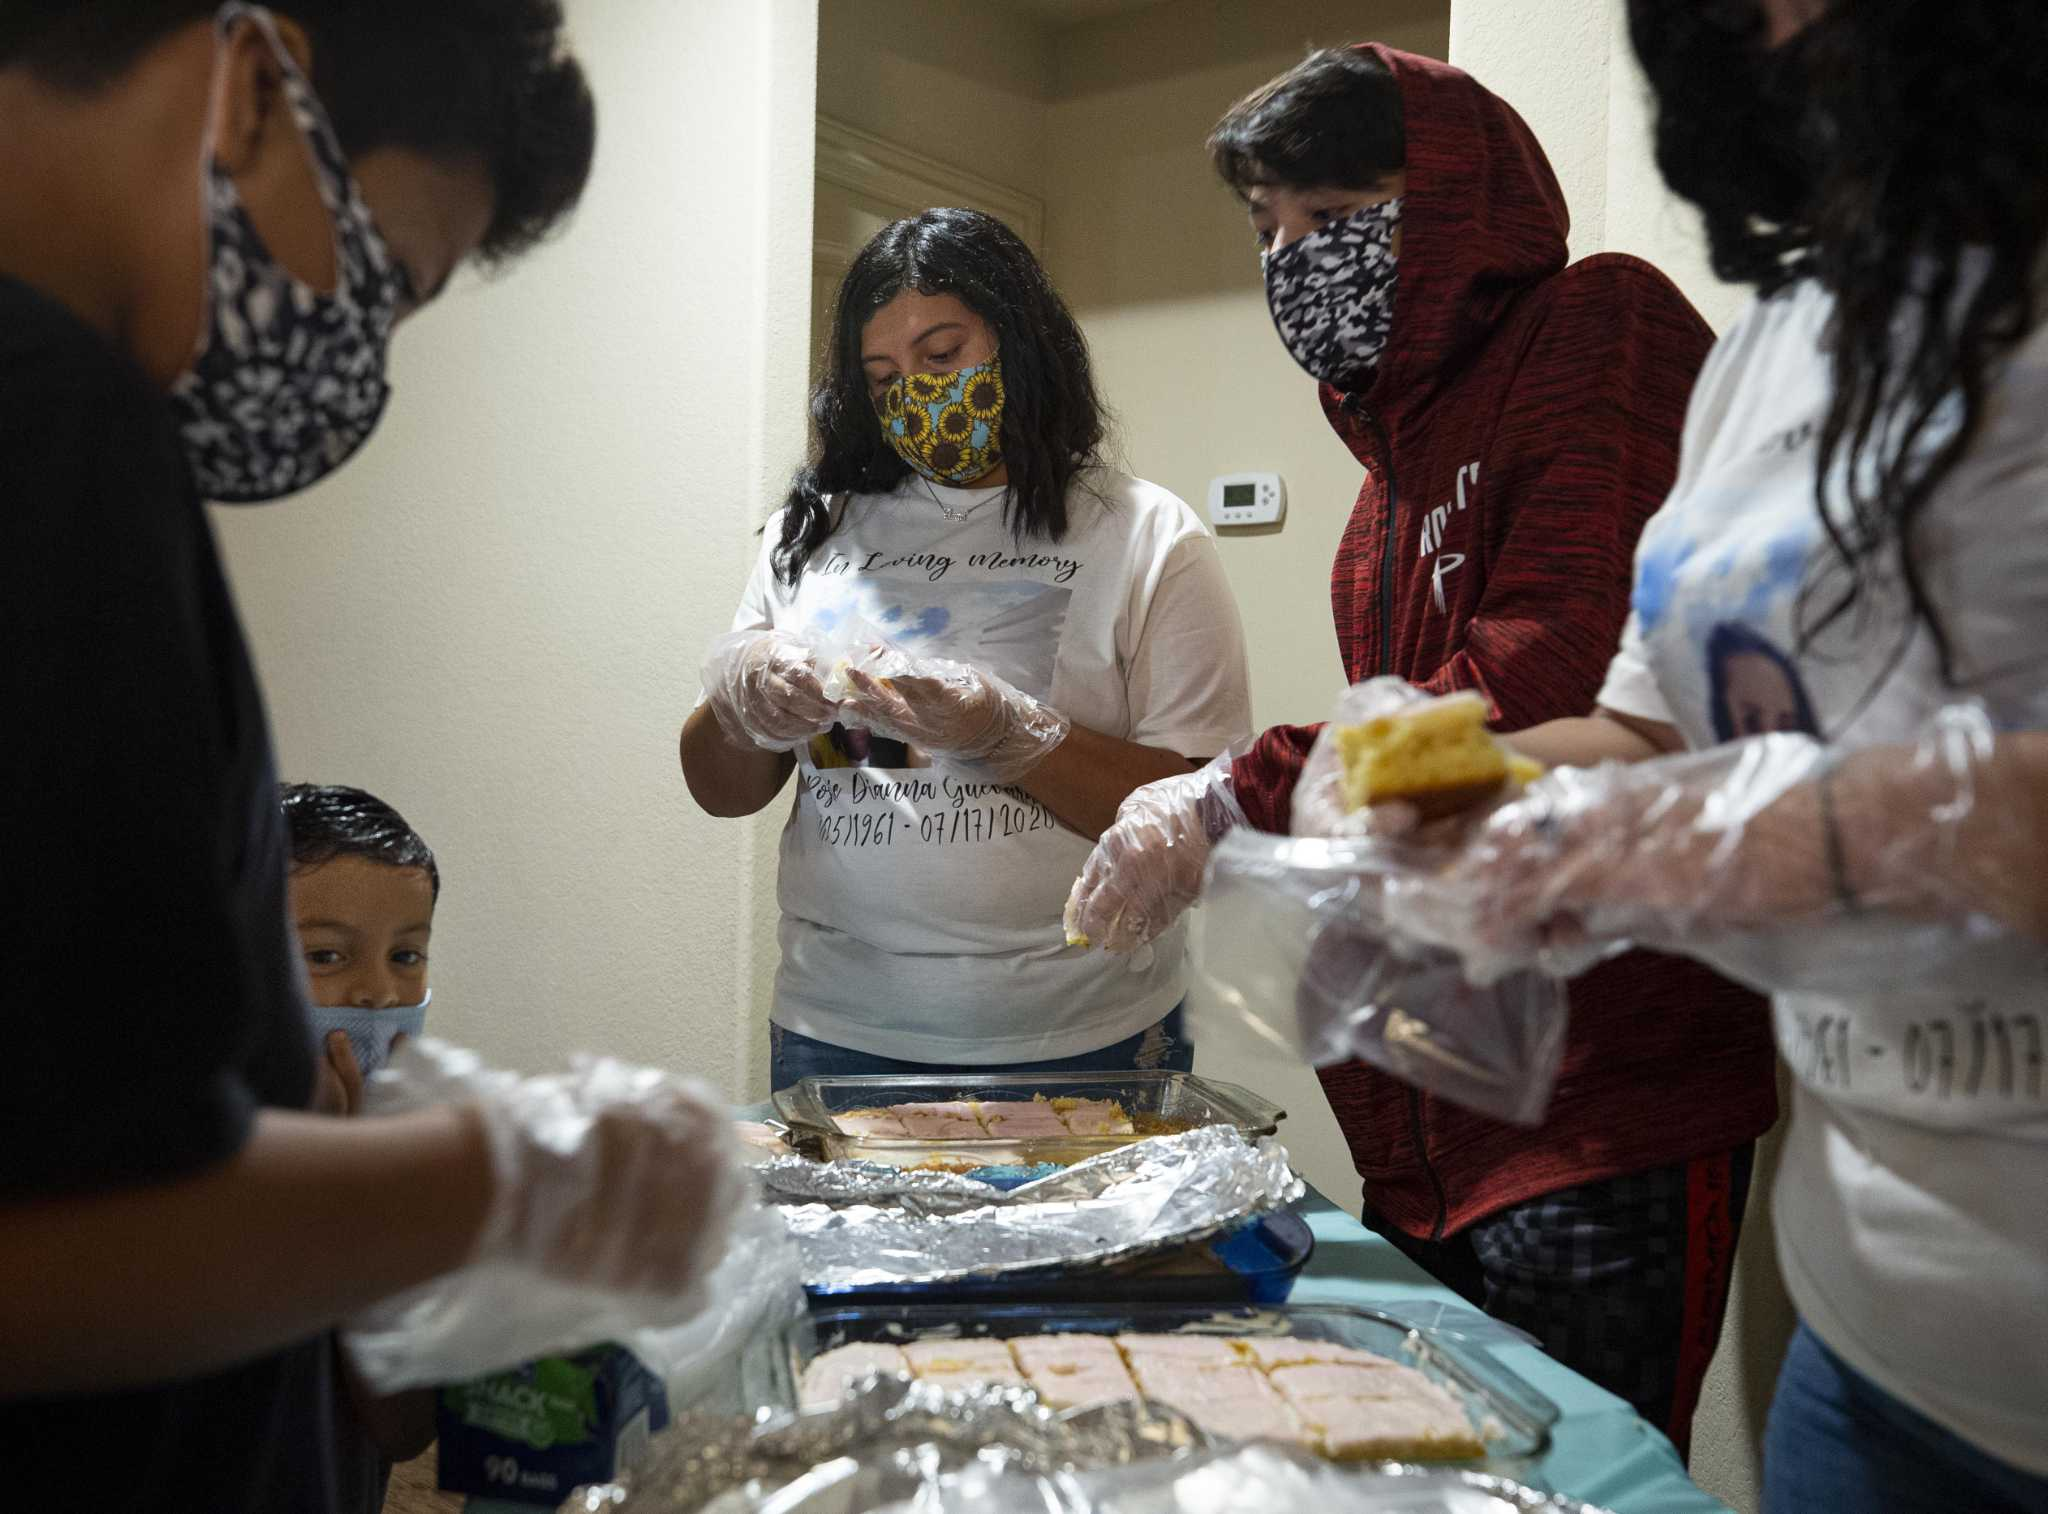 Family members work to put together food orders during a Aug. 1 benefit in Houston for Rosie Guevara, who died of COVID-19 at 59.